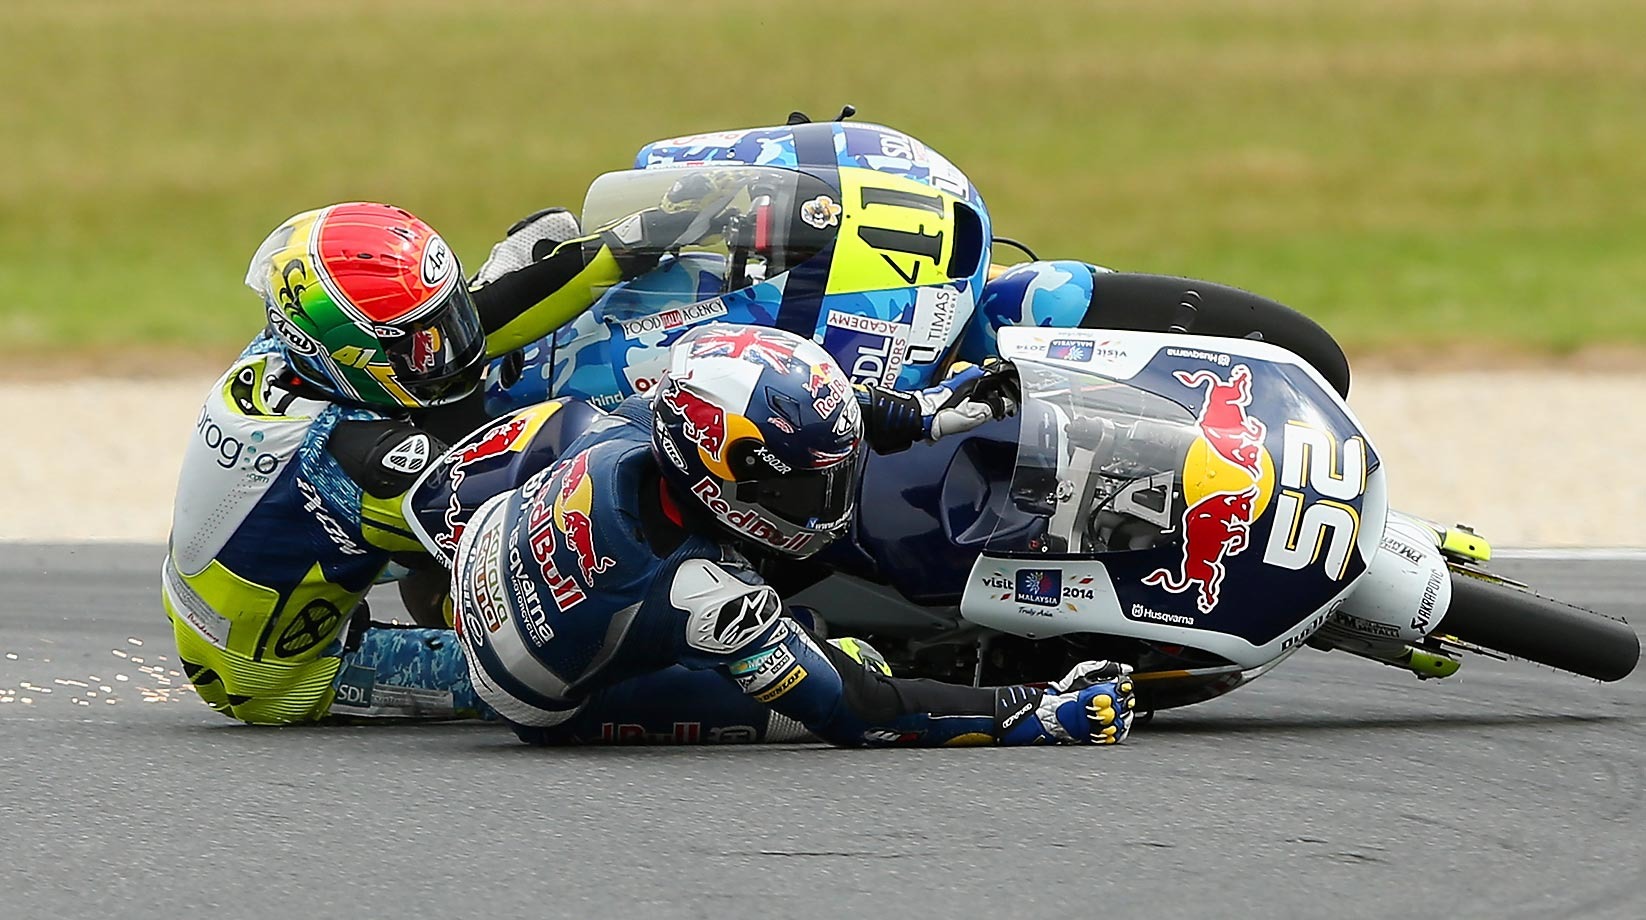 Brad Binder of South Africa and Danny Kent of Great Britain at the 2014 MotoGP of Australia.